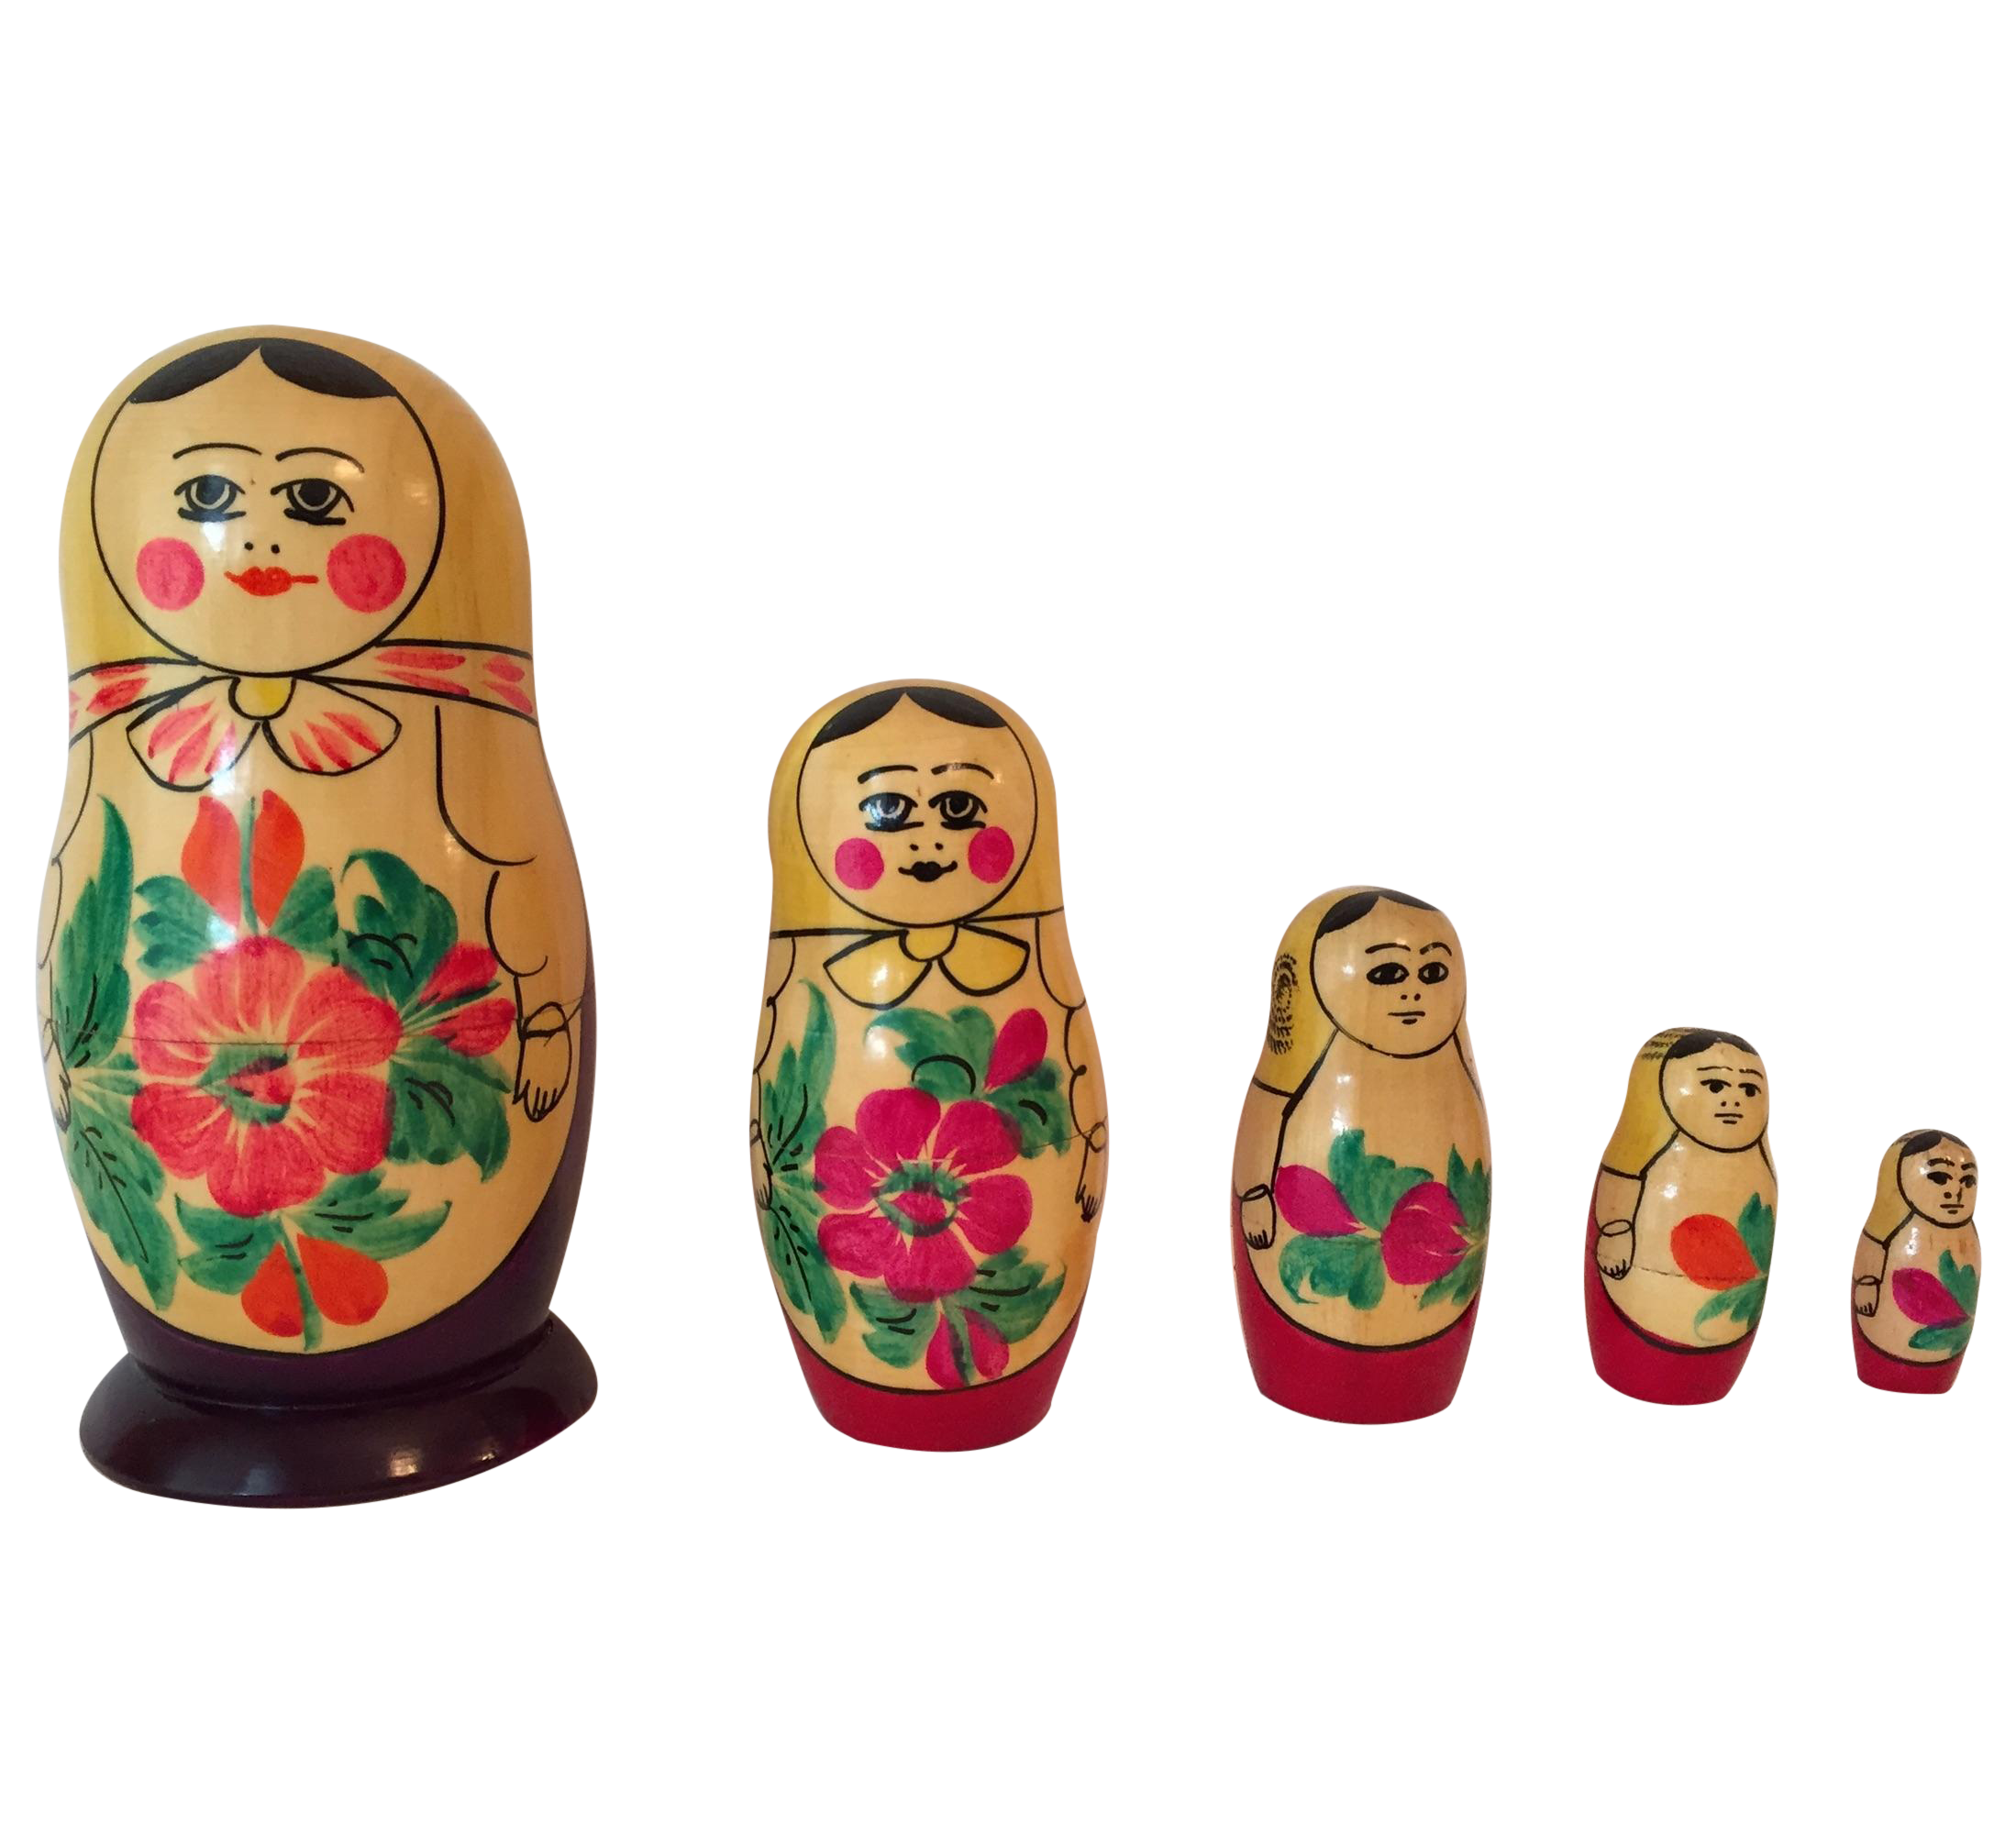 USSR Matryoshka Russian Nesting Dolls Set Of 5 Chairish